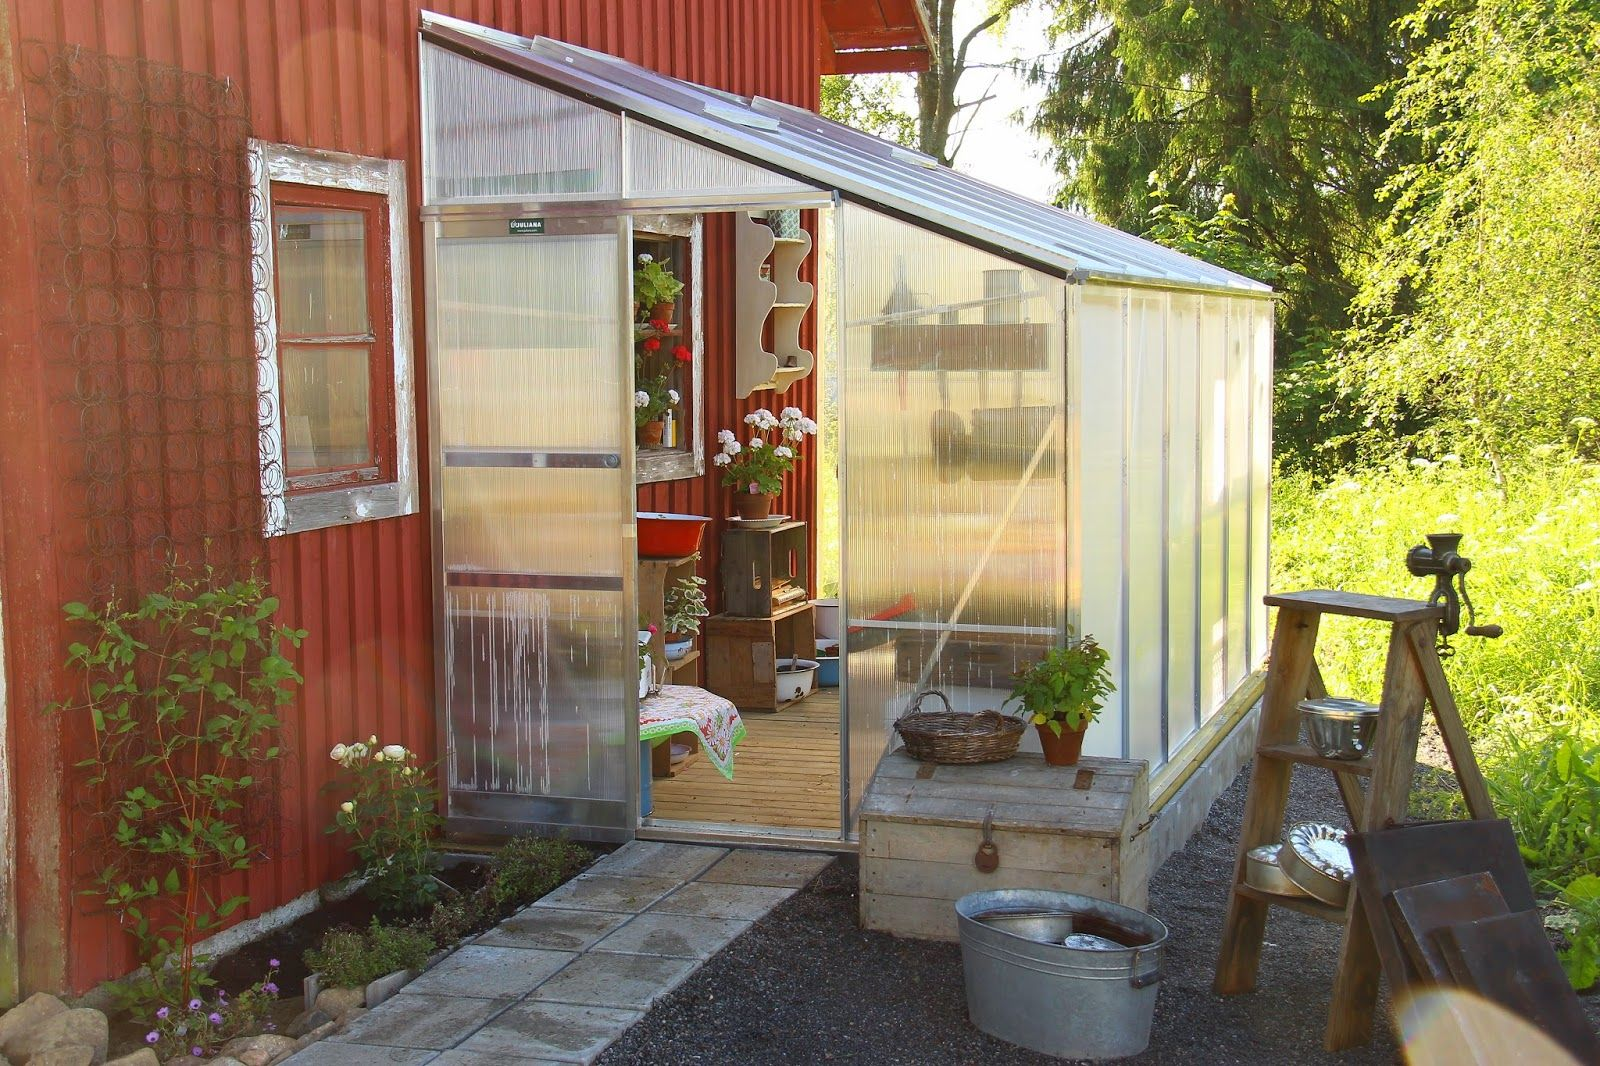 Ruusunmekko garden's greenhouse 'Kyökki' in June 2014.